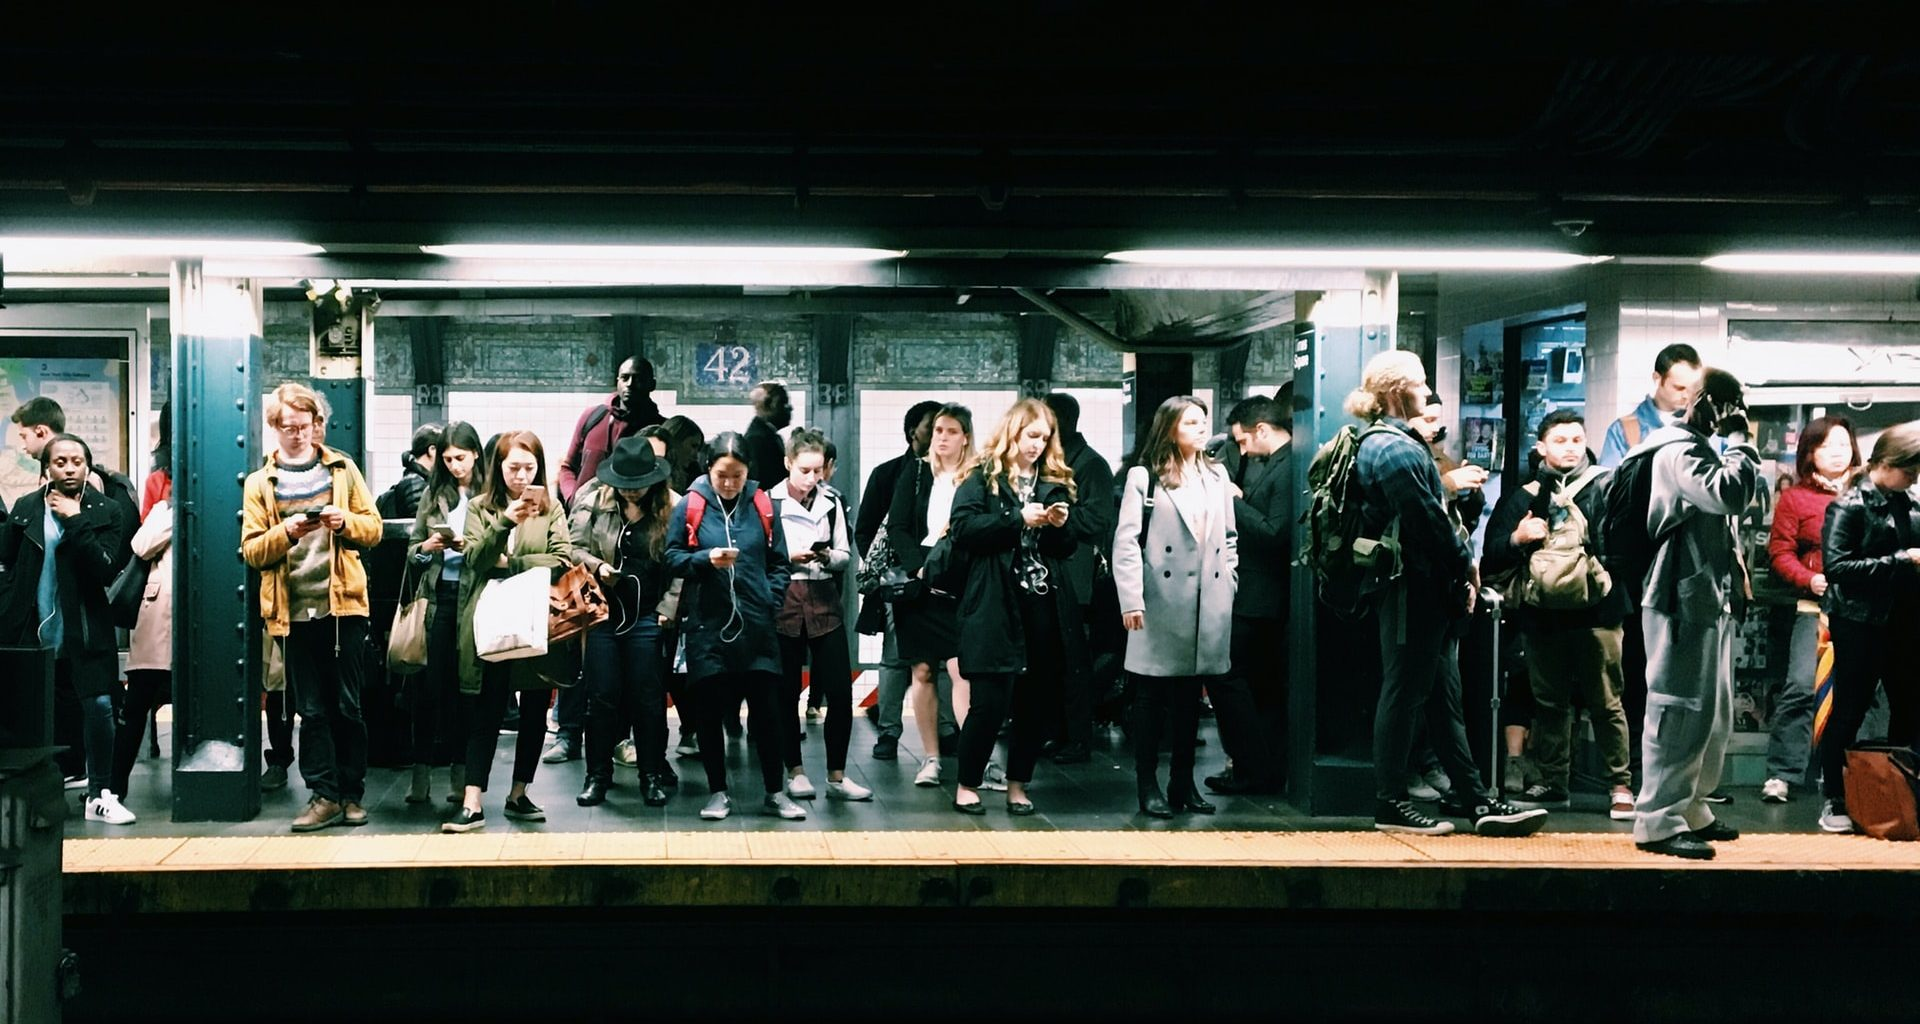 A congested subway platform